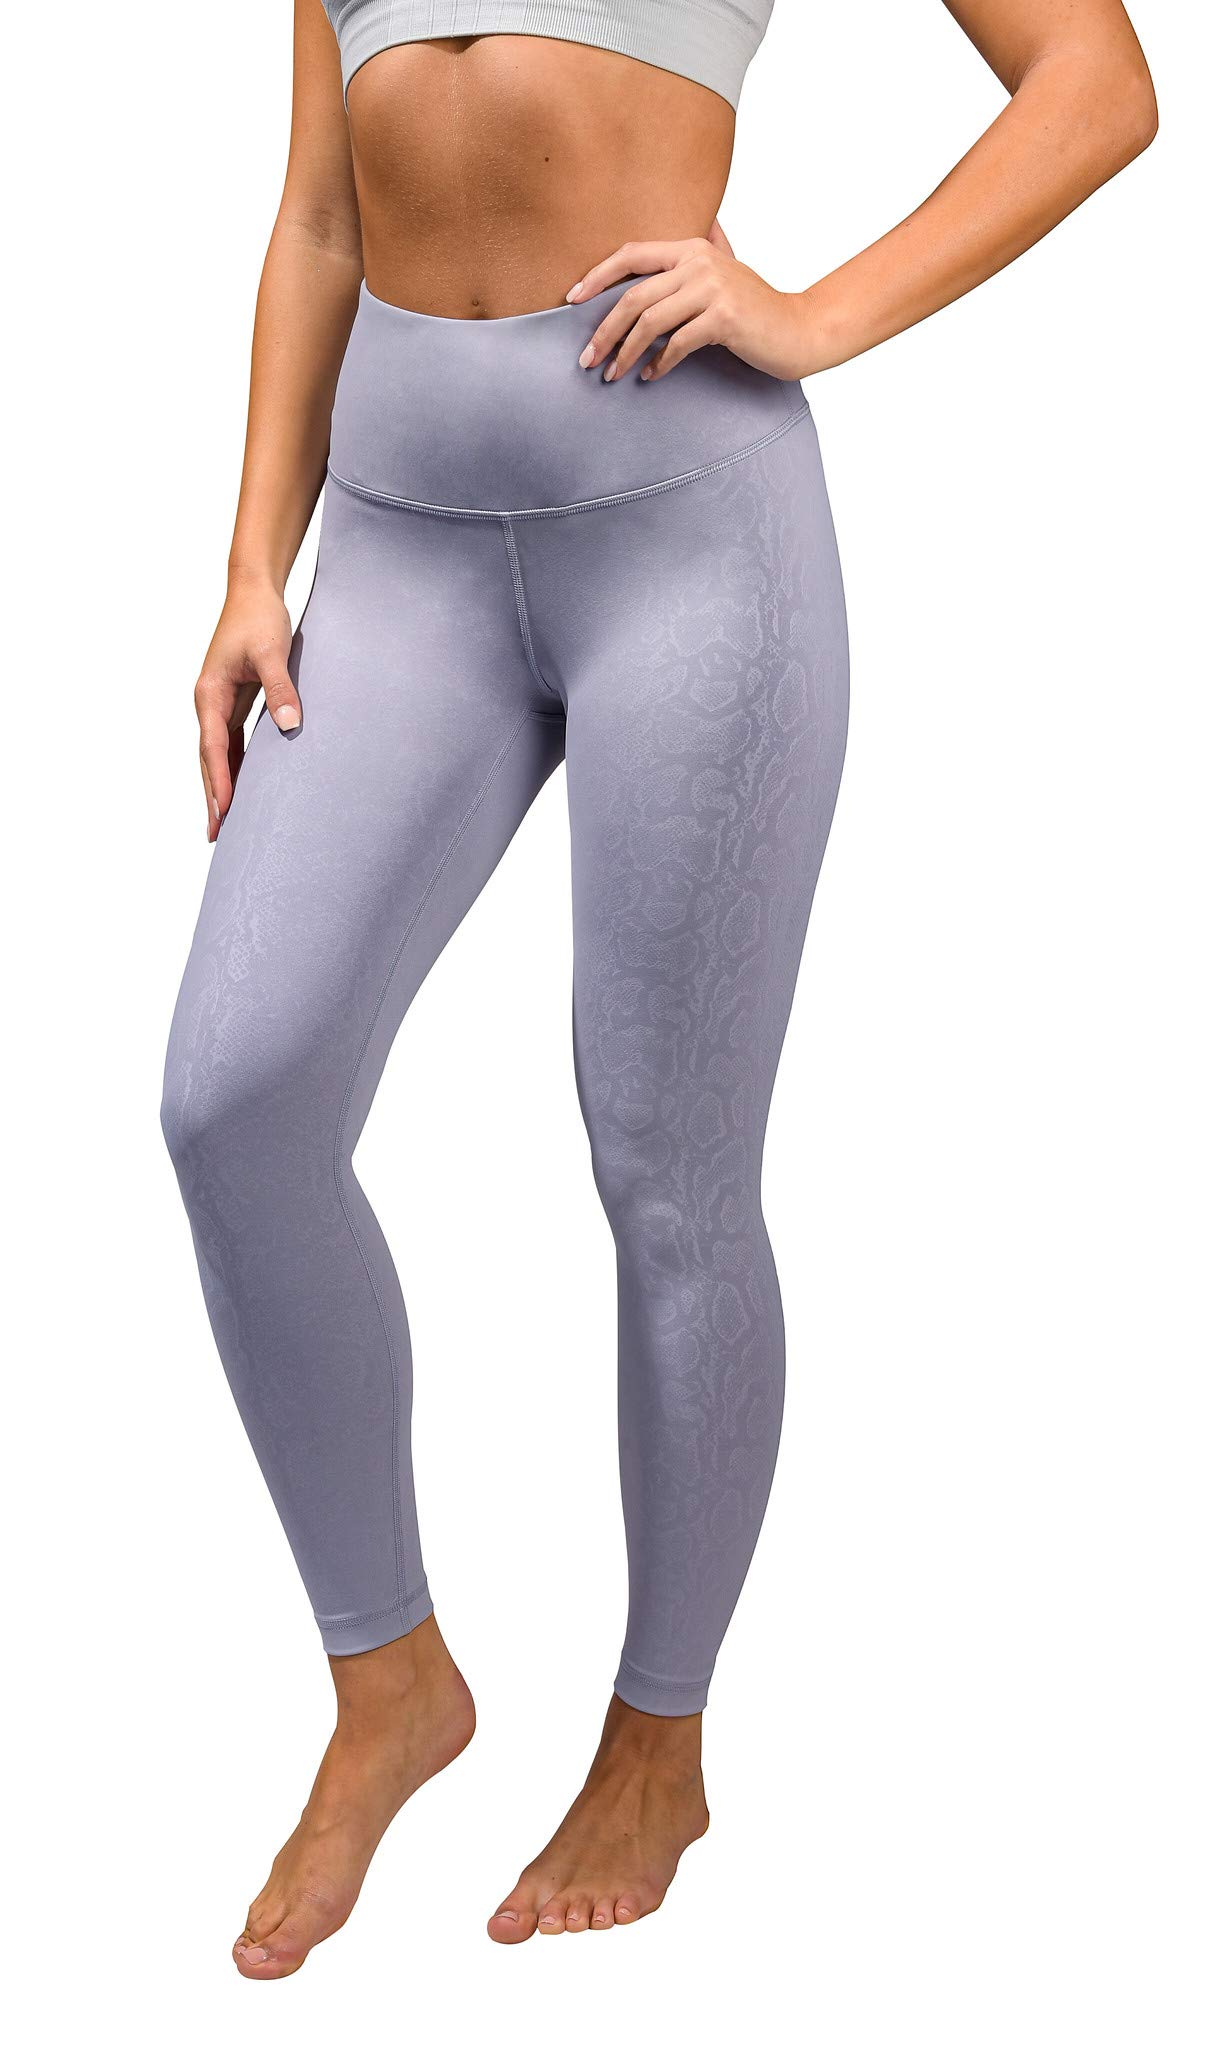 90 Degree By Reflex - Performance Activewear - Printed Yoga Leggings